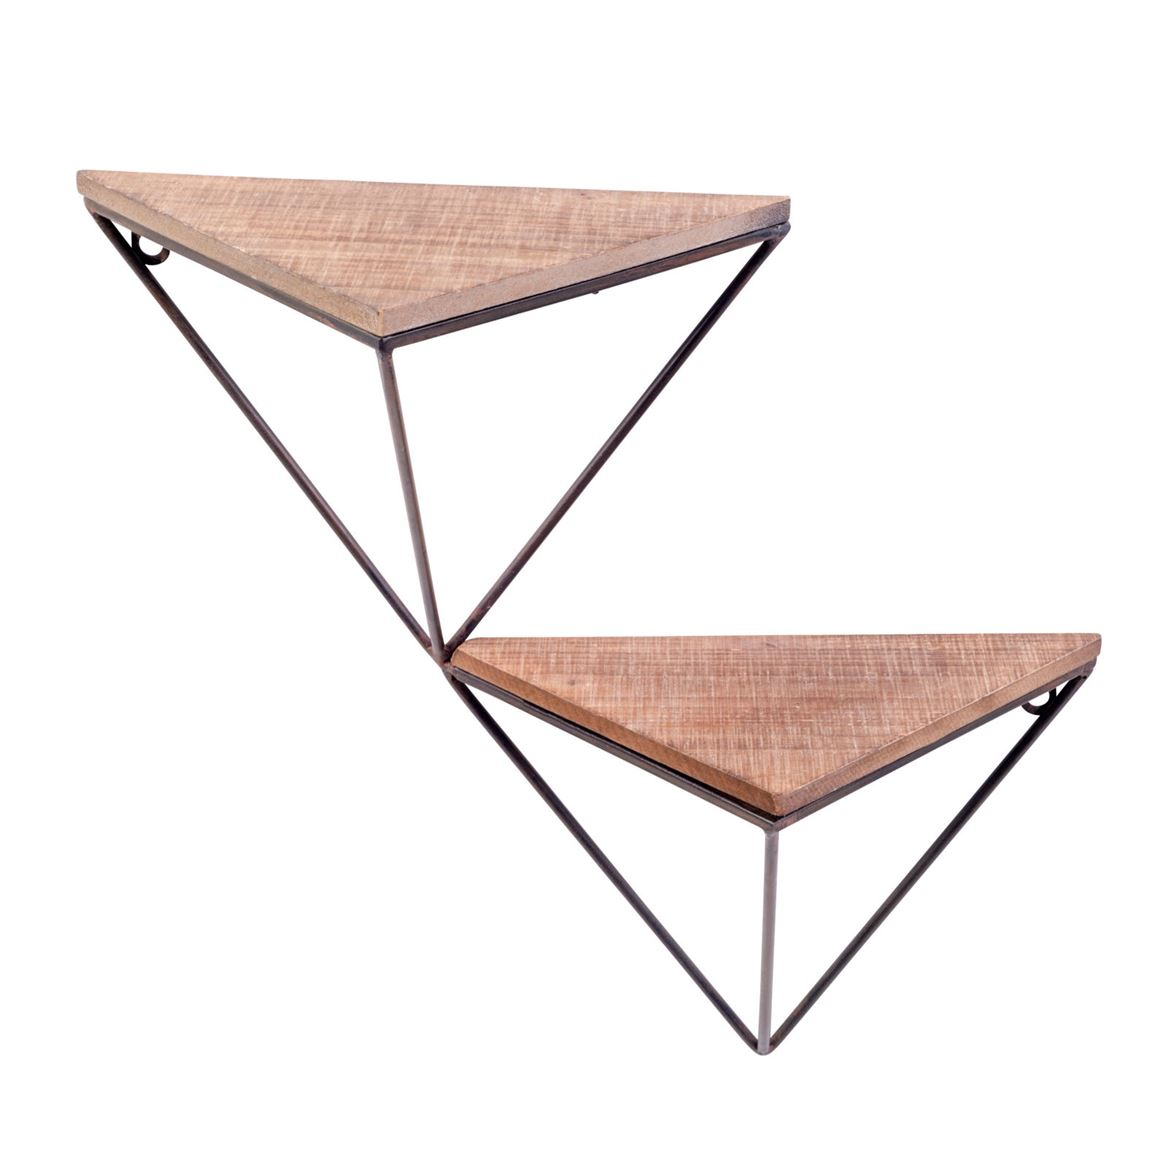 Triangle tag re murale produits feelgood pour la maison - Etagere table de nuit ...